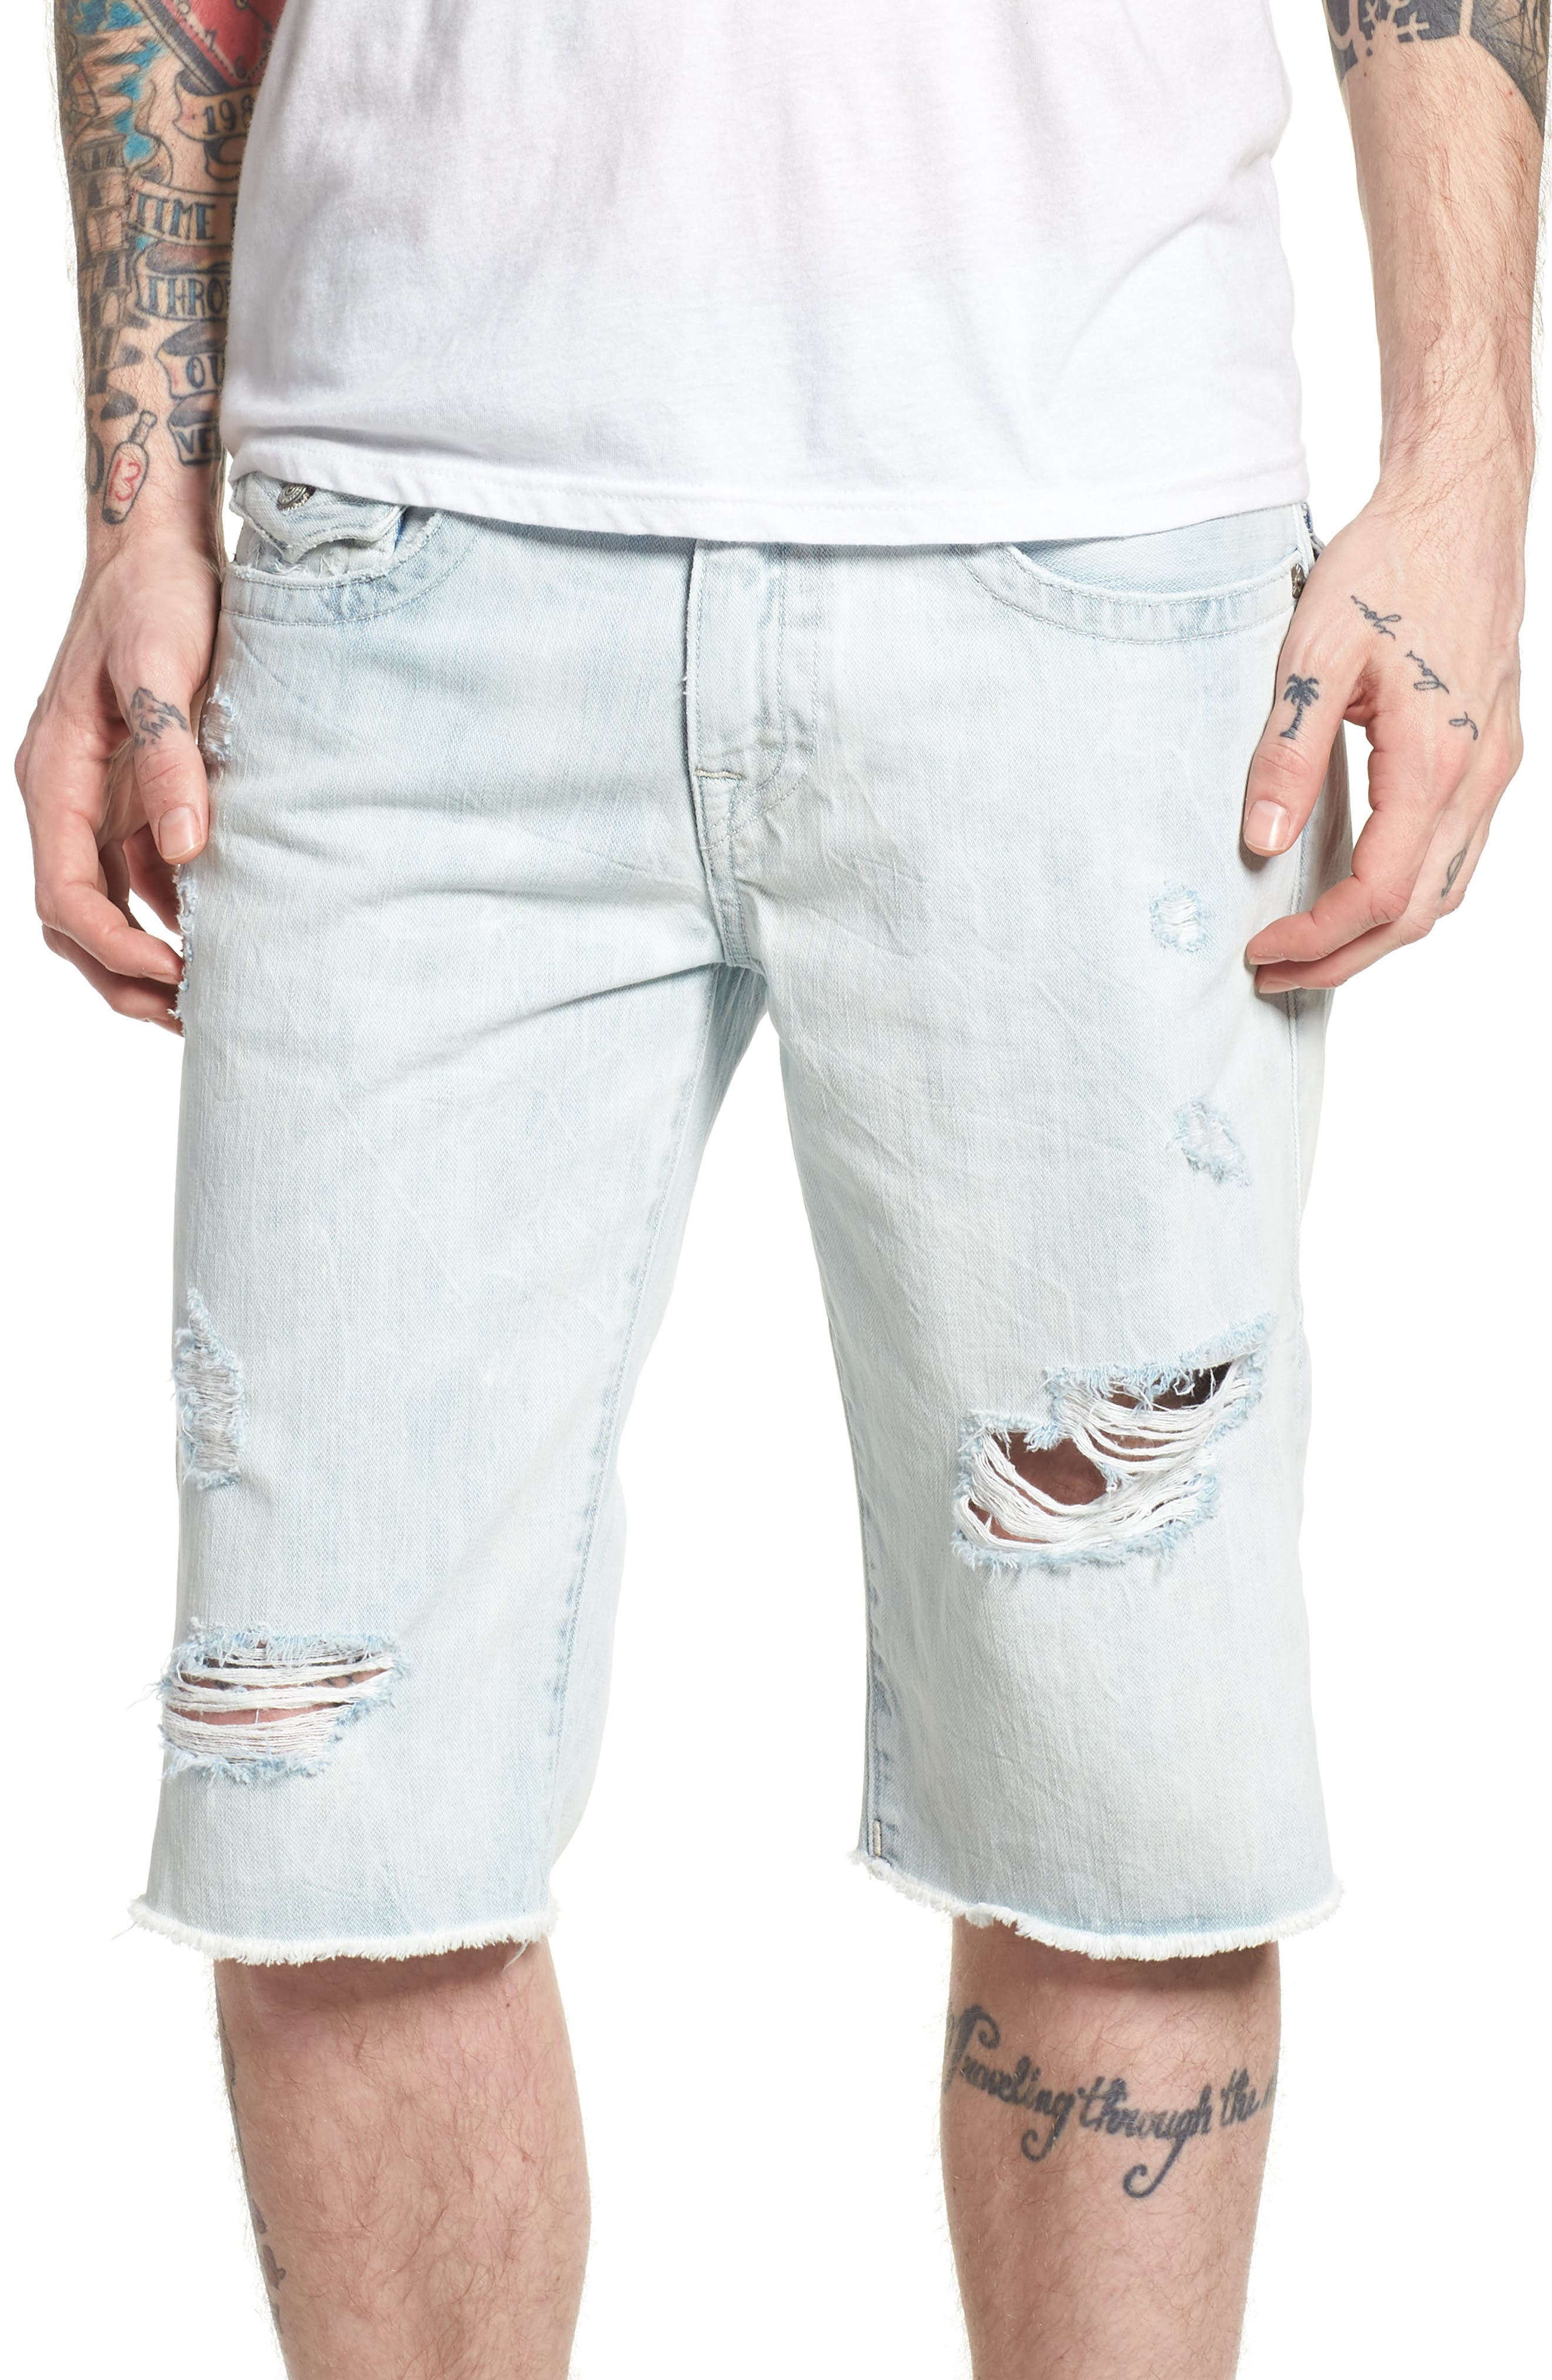 Ricky Relaxed Fit Shorts,                             Main thumbnail 1, color,                             Eqll Torn Optic